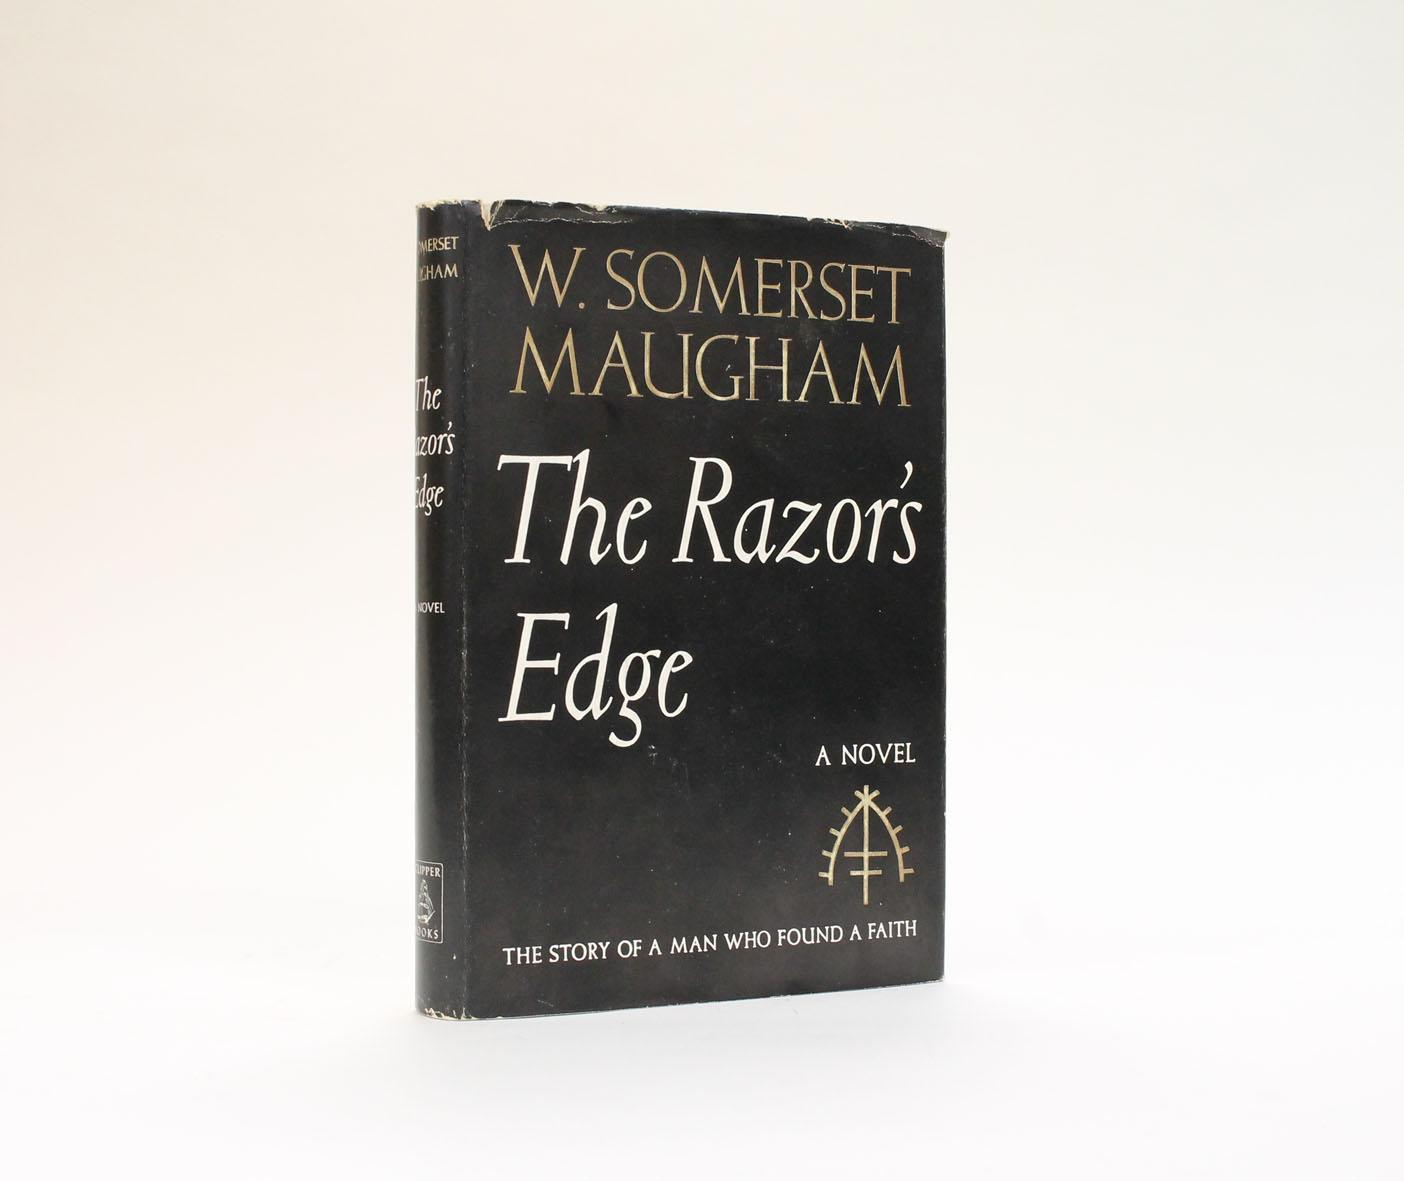 somerset maugham essay The luncheon - william somerset maugham essay  i caught sight of her at the play and in answer to her beckoning i went over during the interval and sat down beside her - the luncheon - william somerset maugham essay introduction.